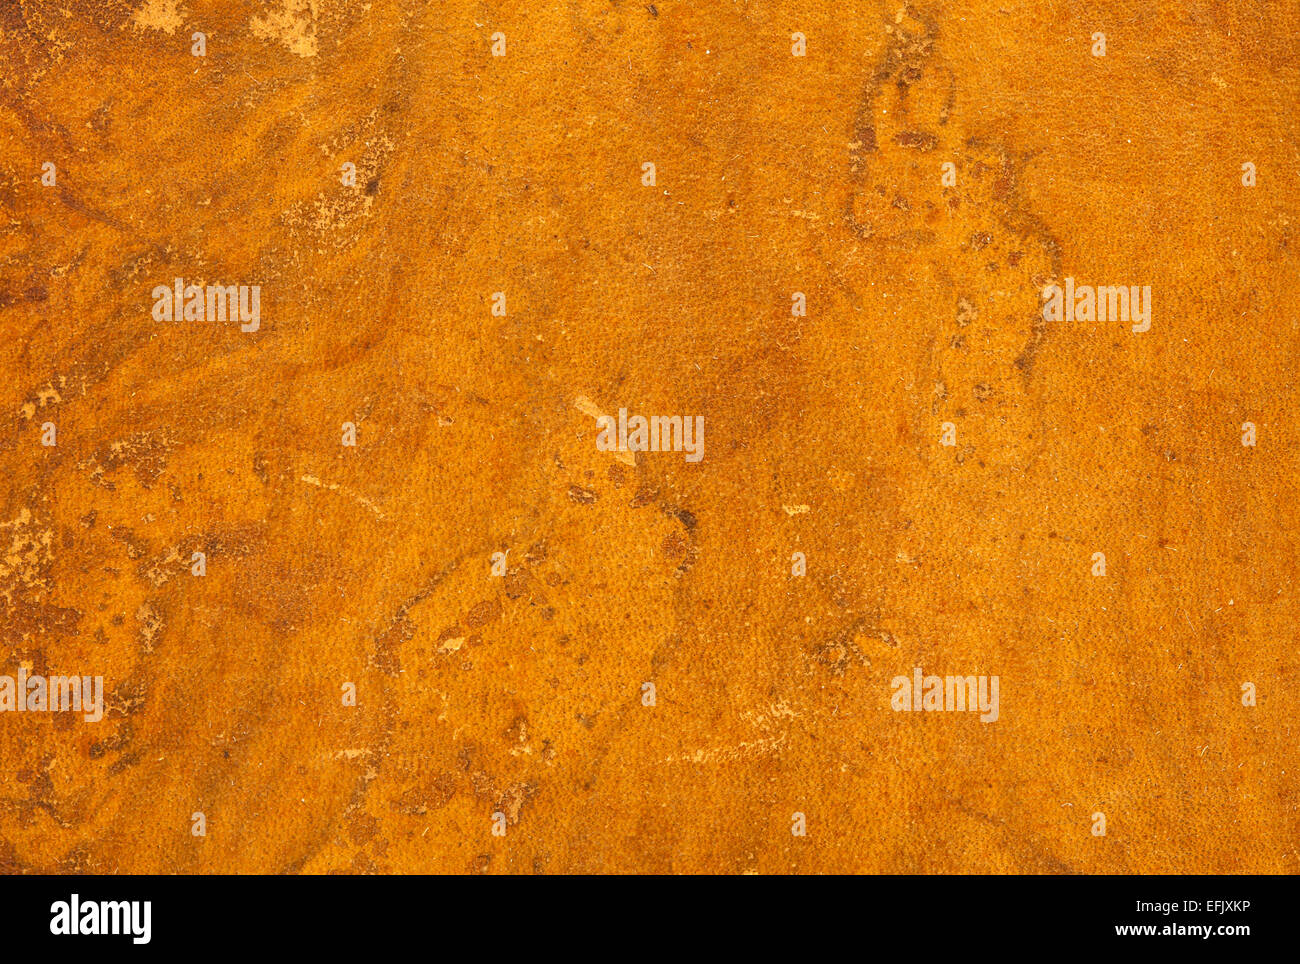 Book Cover Background Zero : Brown tan leather book cover texture background stock